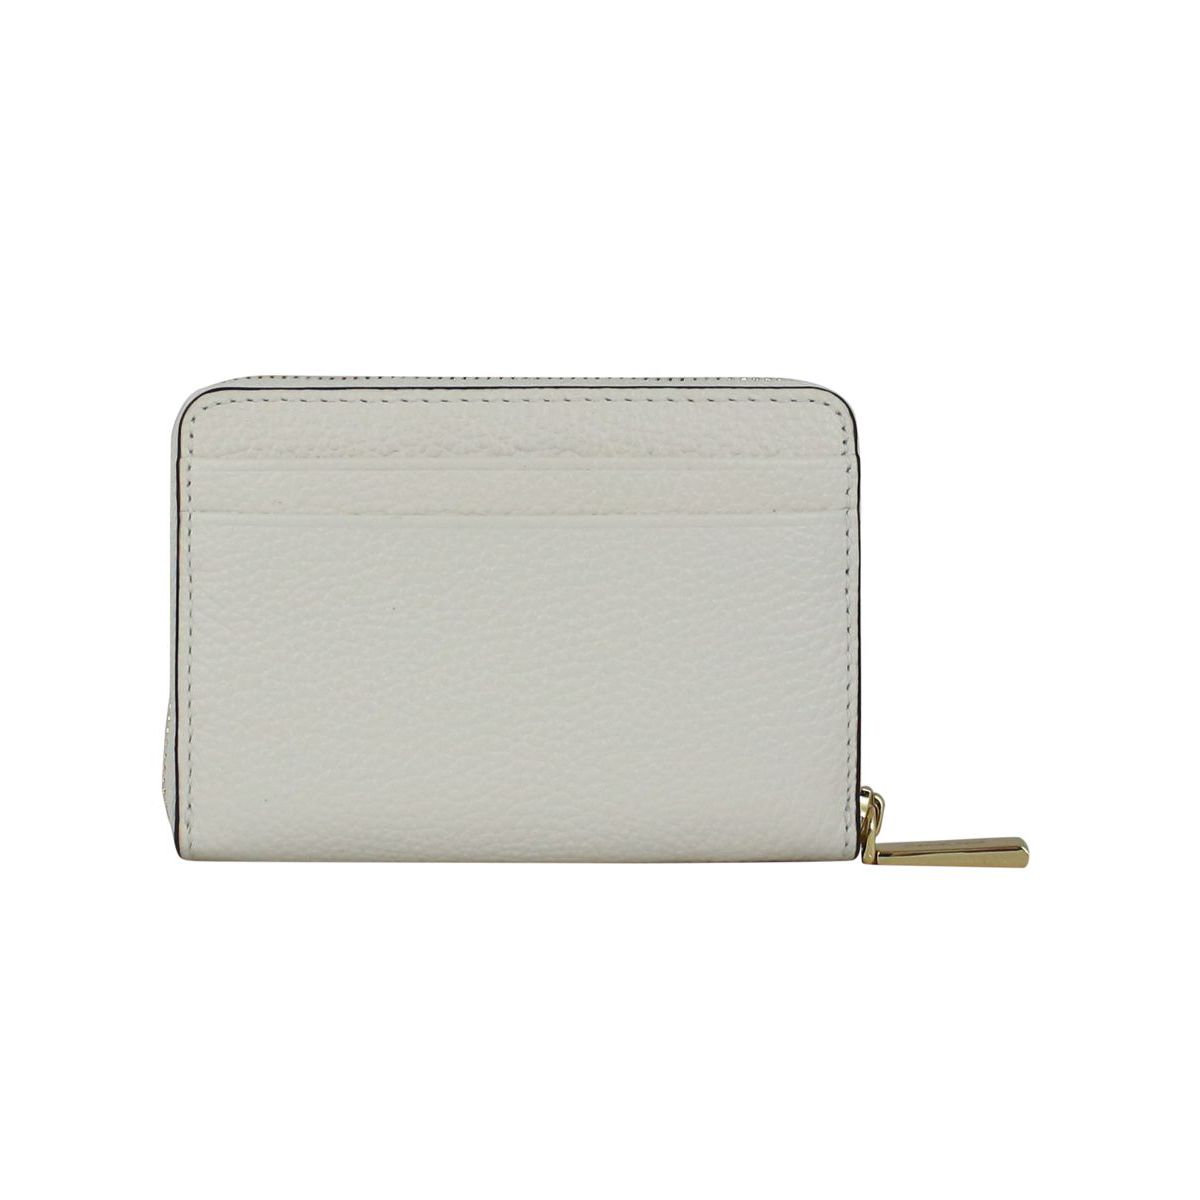 Document holder with logo Optical white Michael Kors